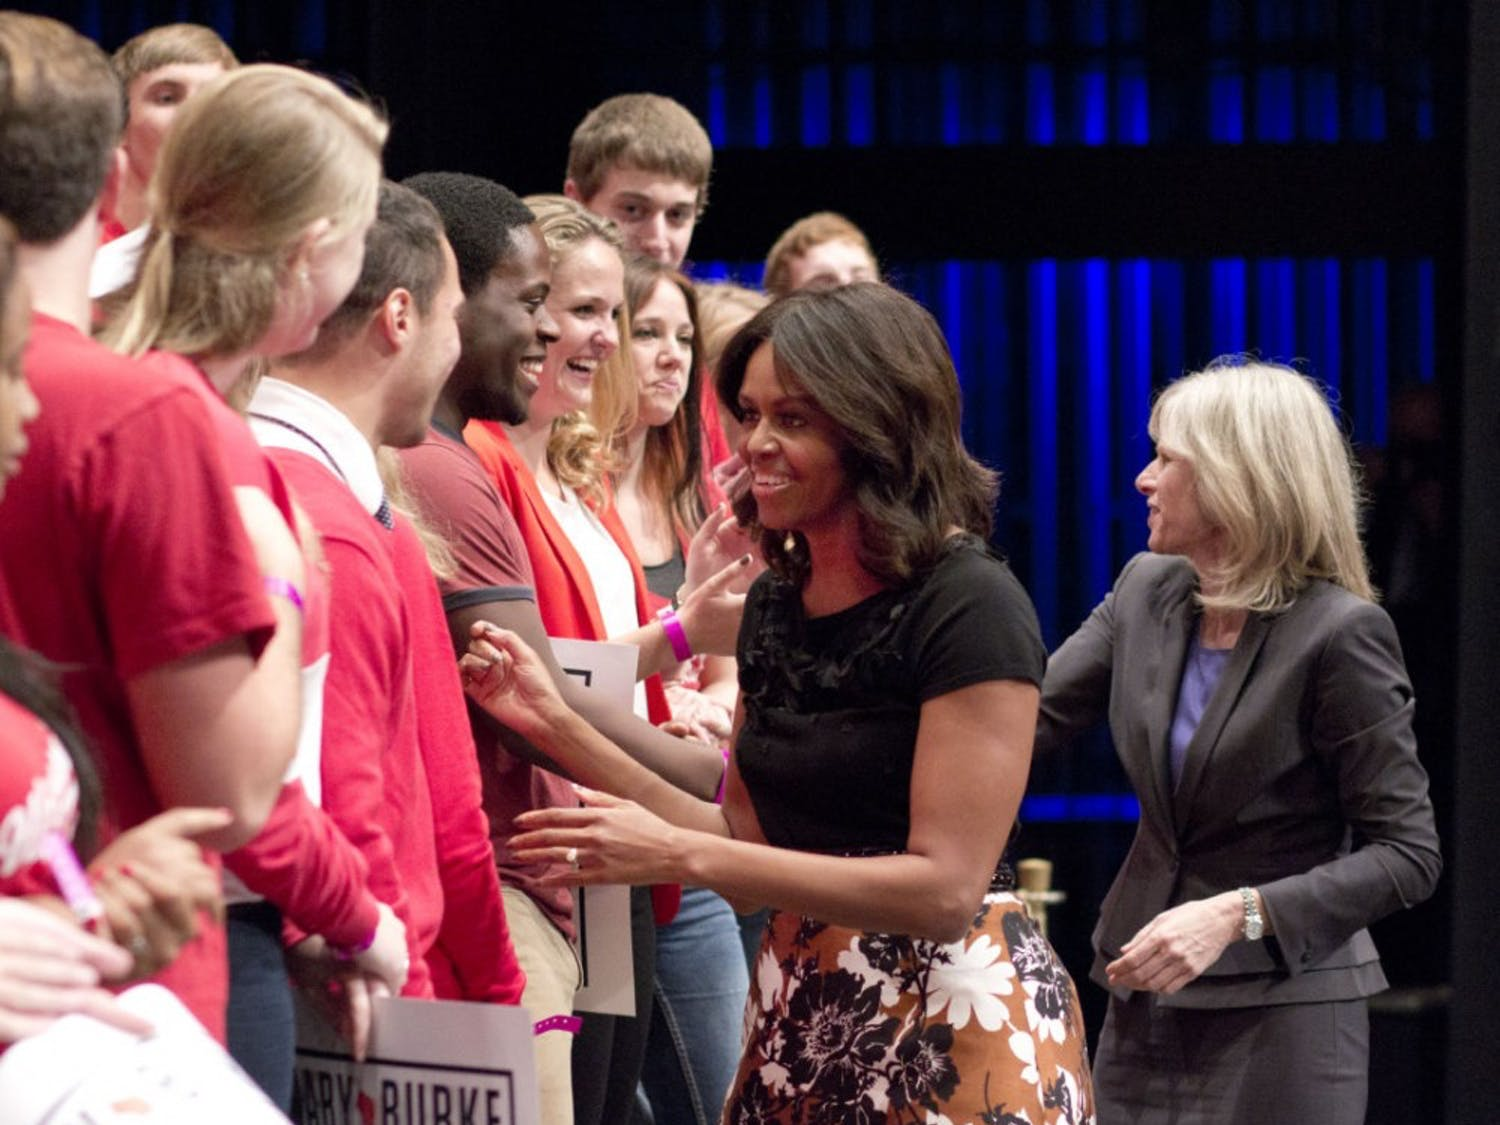 Michelle Obama Visits the Overture Center